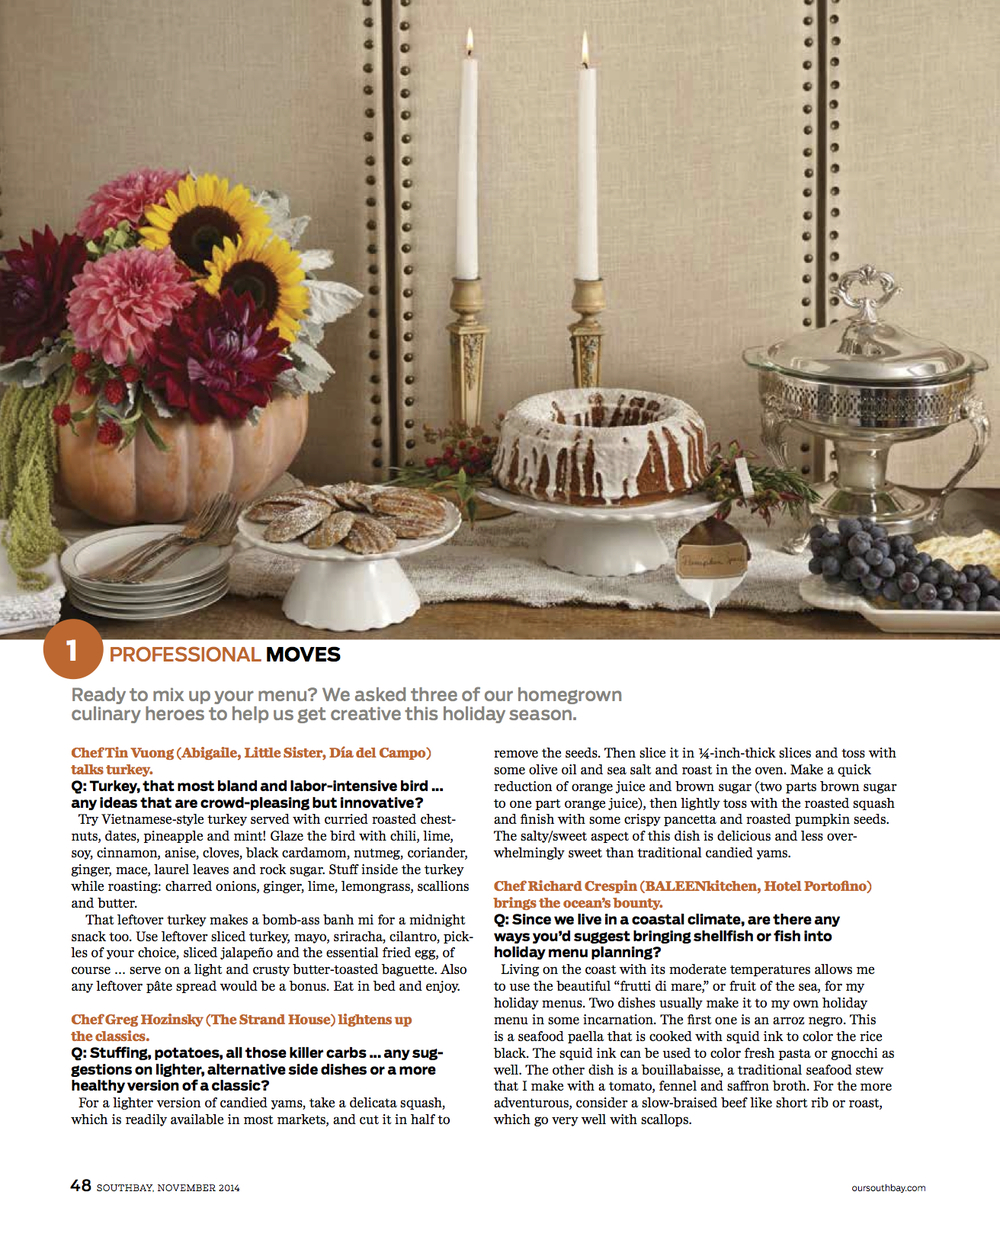 FALL ENTERTAINING FEATURE